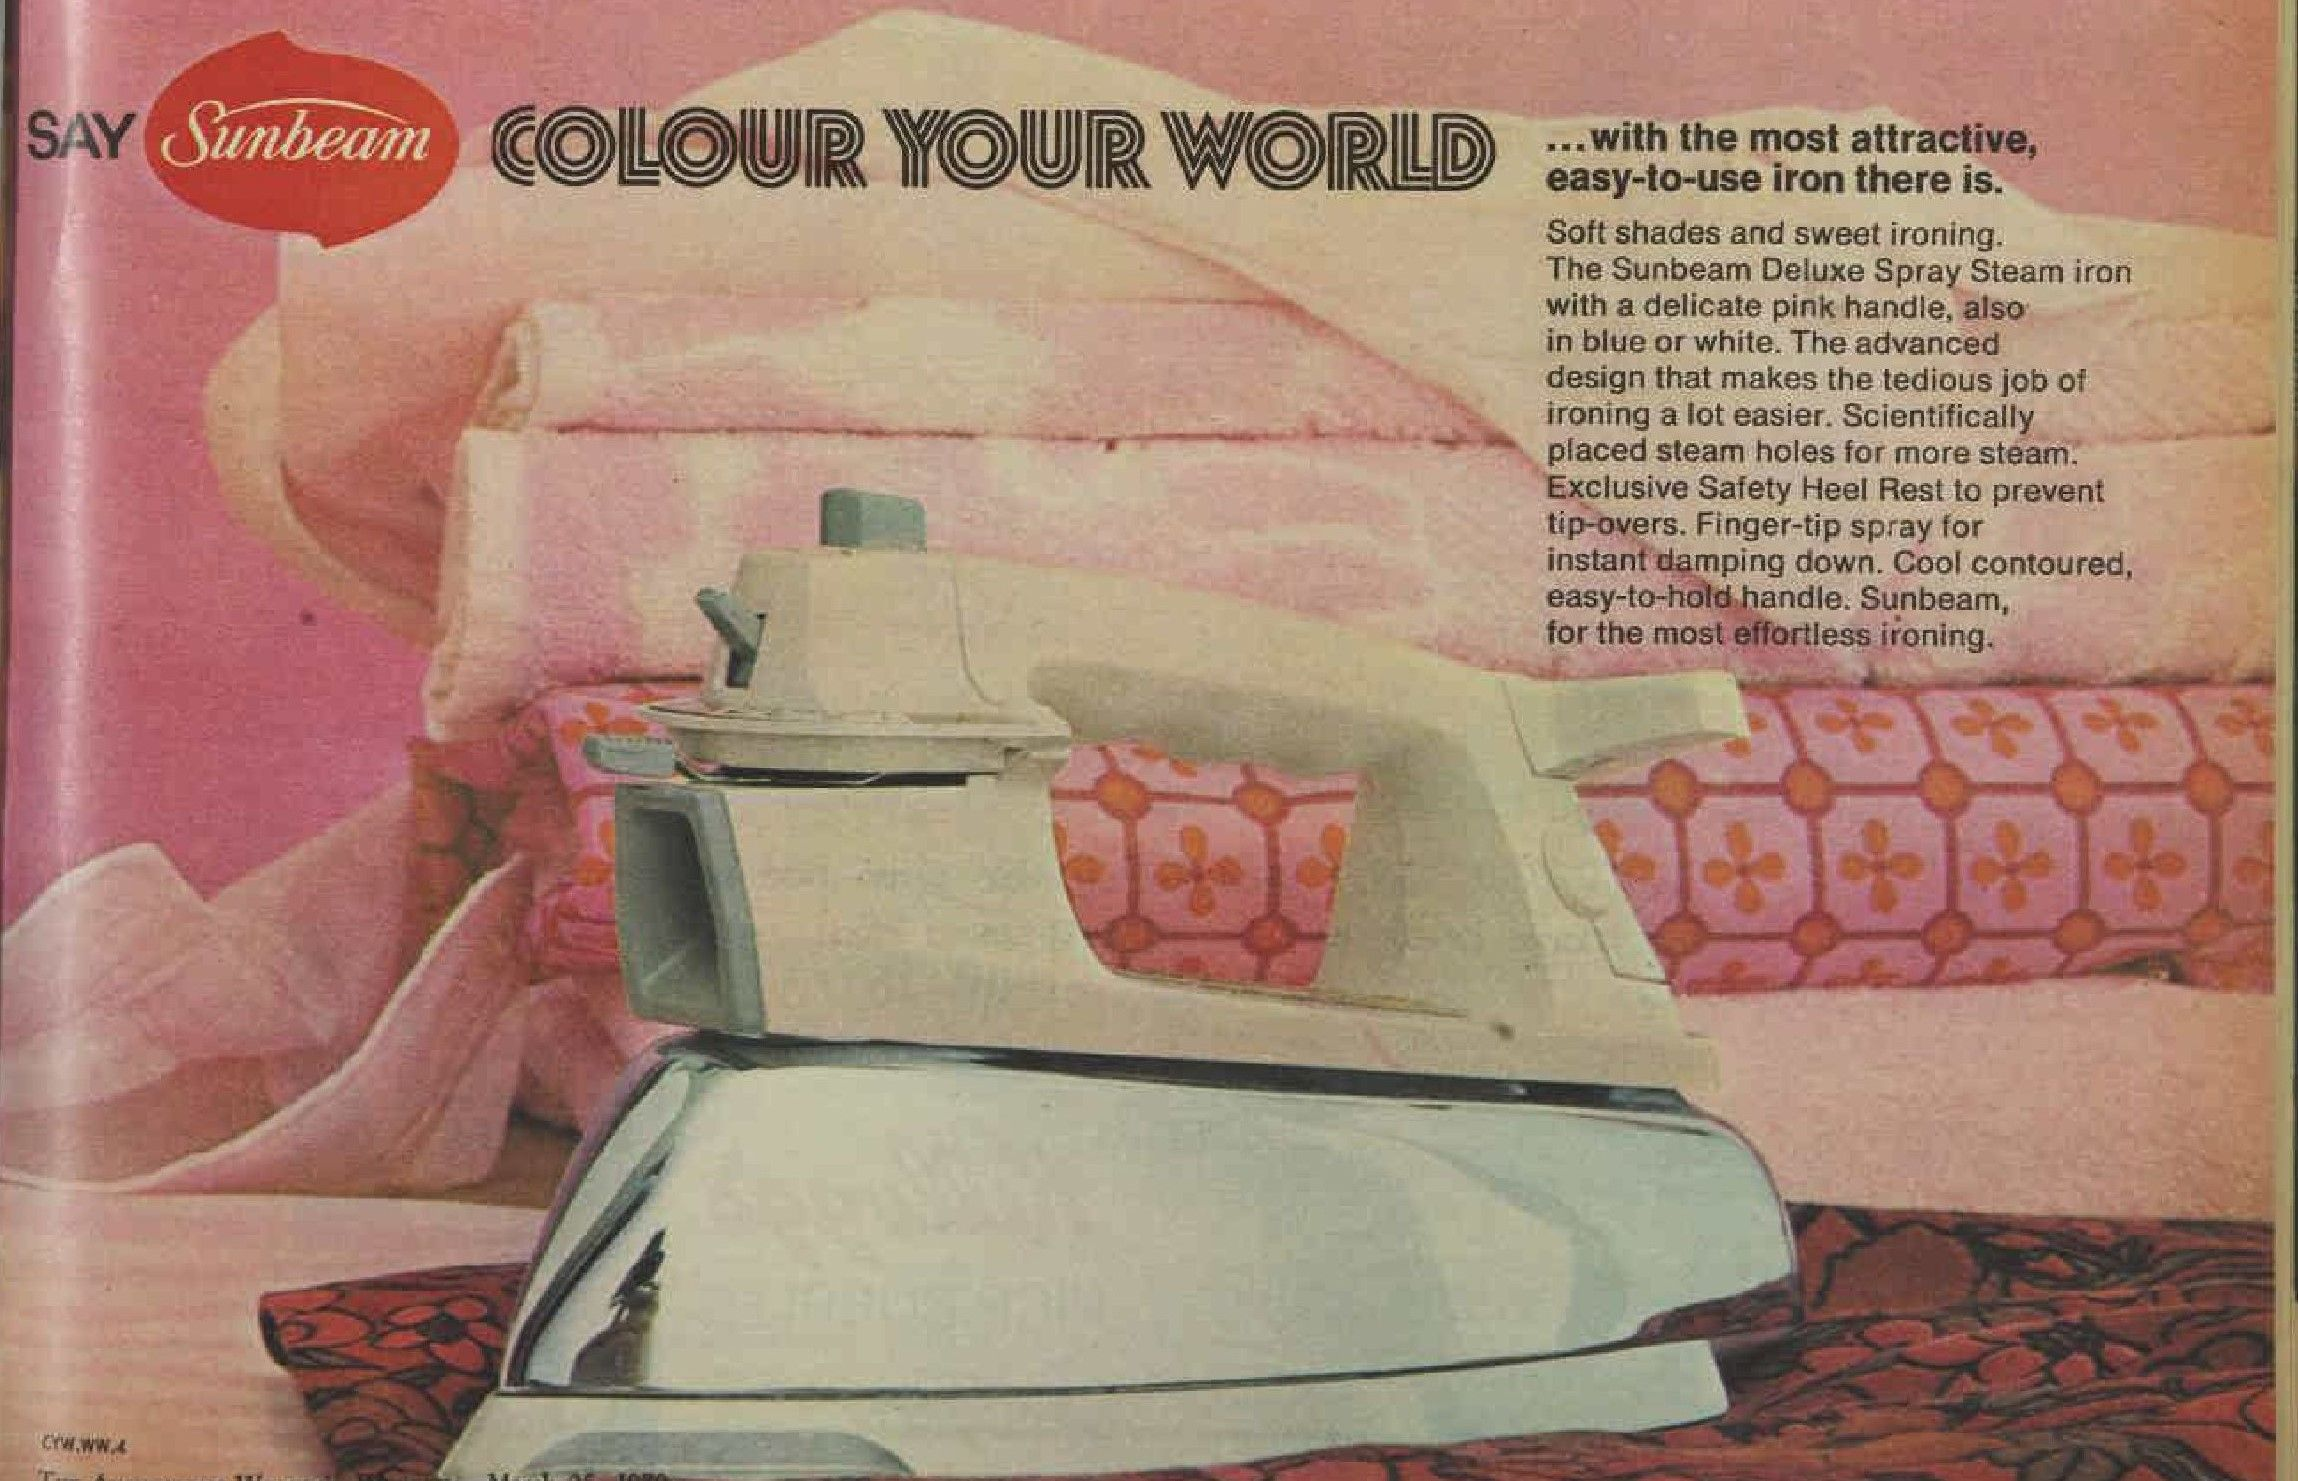 Sunbeam Colour your world Pink Iron Advertisement Ad March 1970 Vintage Retro